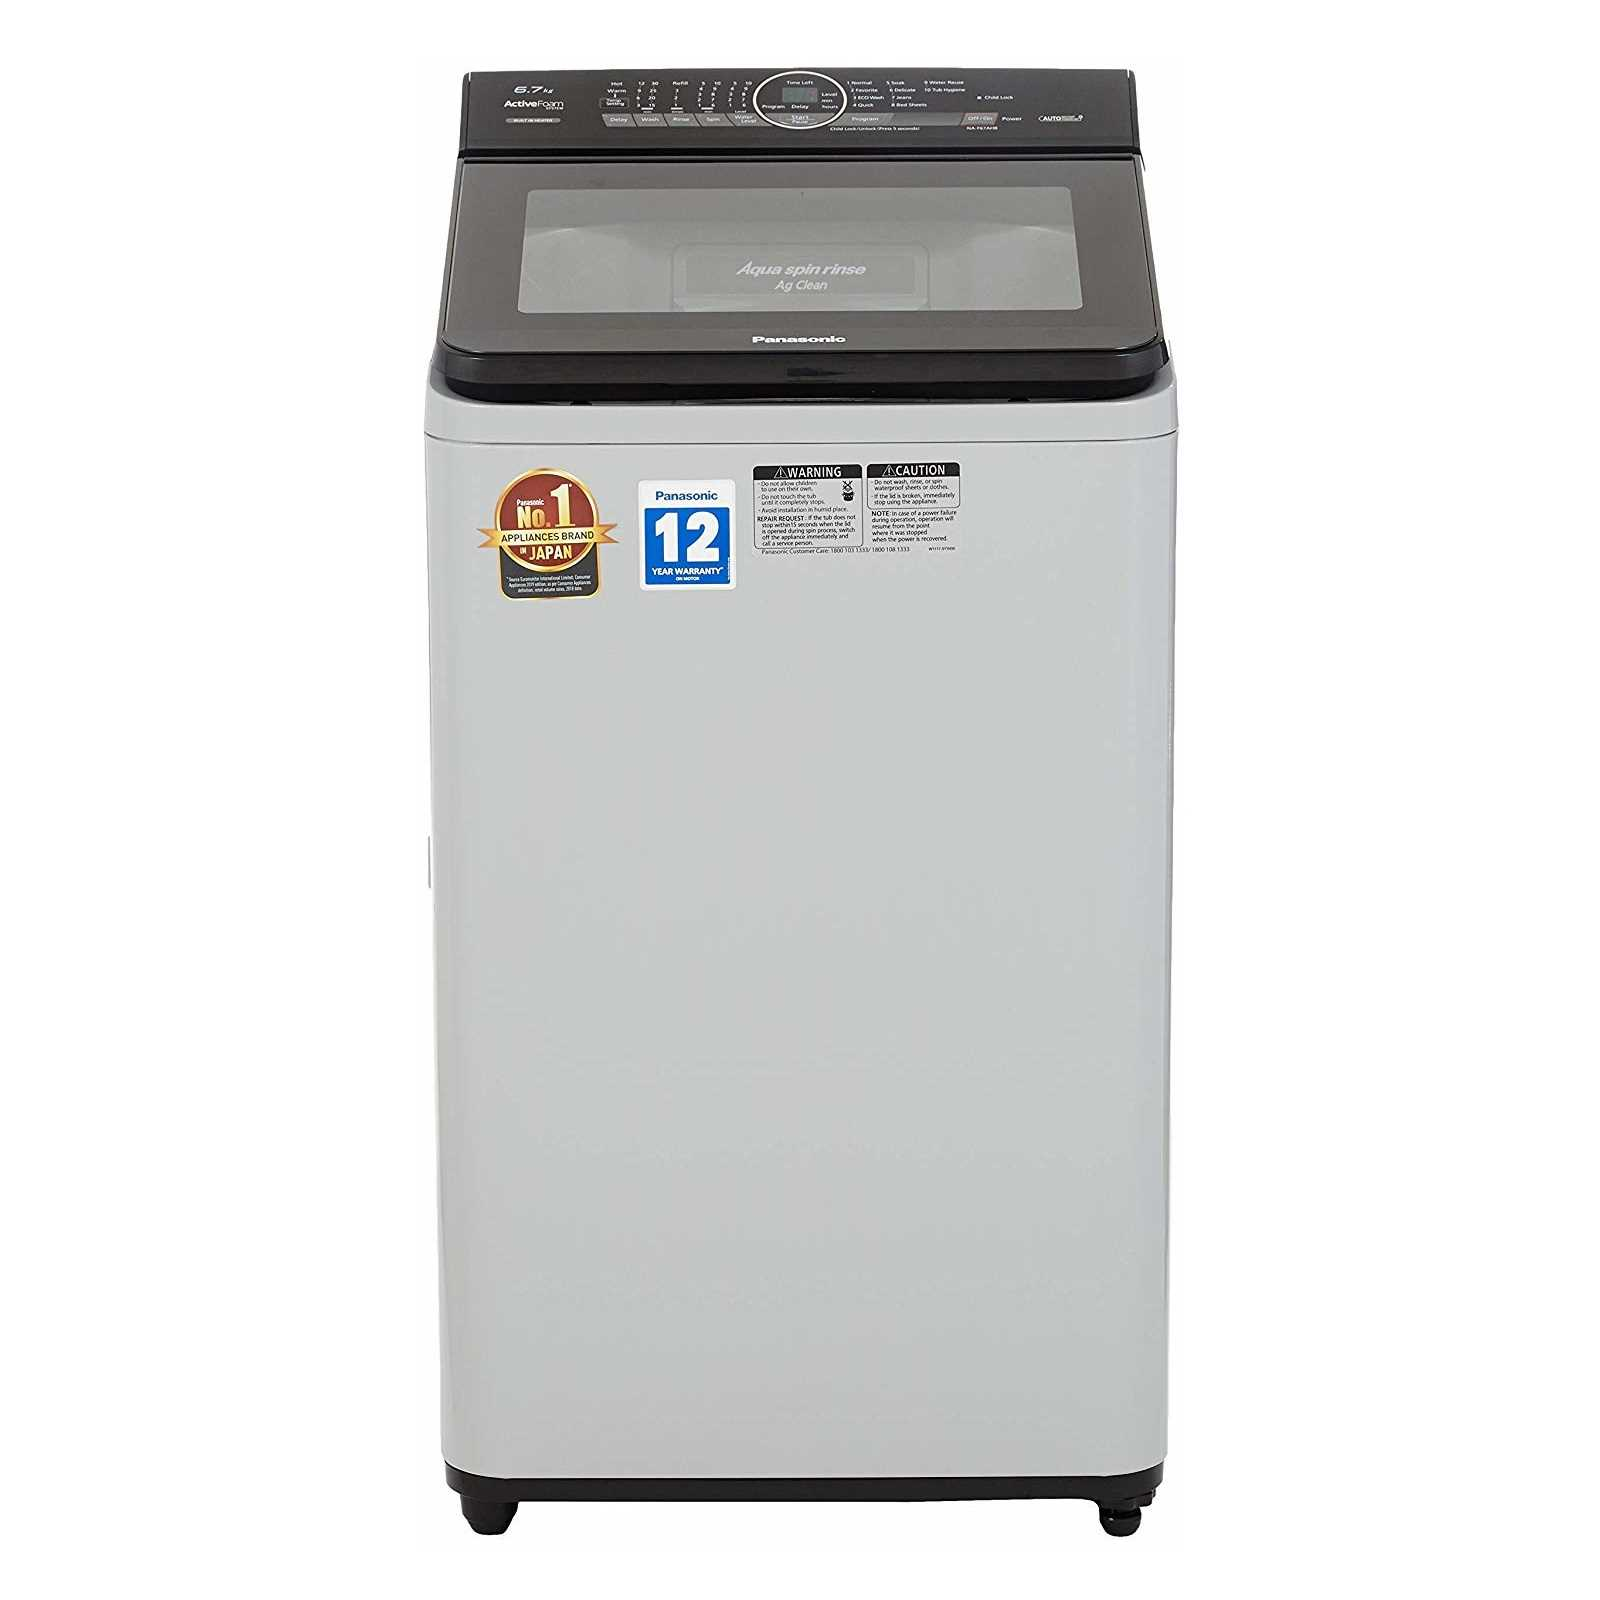 Panasonic NA F67AH8 6.7 Kg Fully Automatic Top Loading Washing Machine